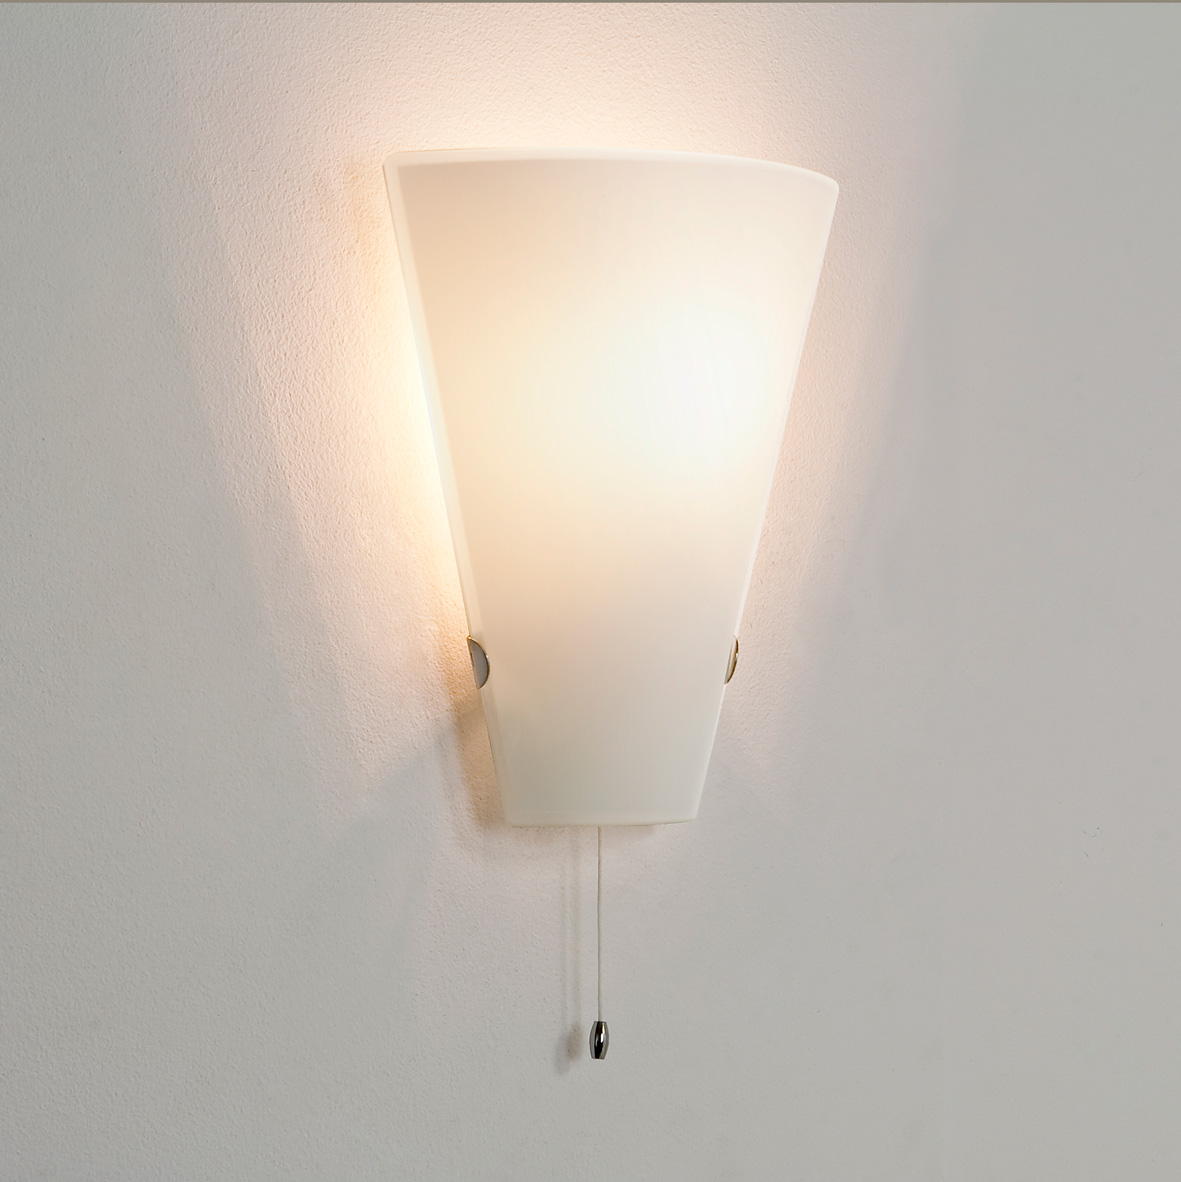 Cream Wall Lights With Pull Cord : dimmable pull cord switch wall light 60W E14 lamp IP20 glass eBay - Wall lights, LED bathroom ...